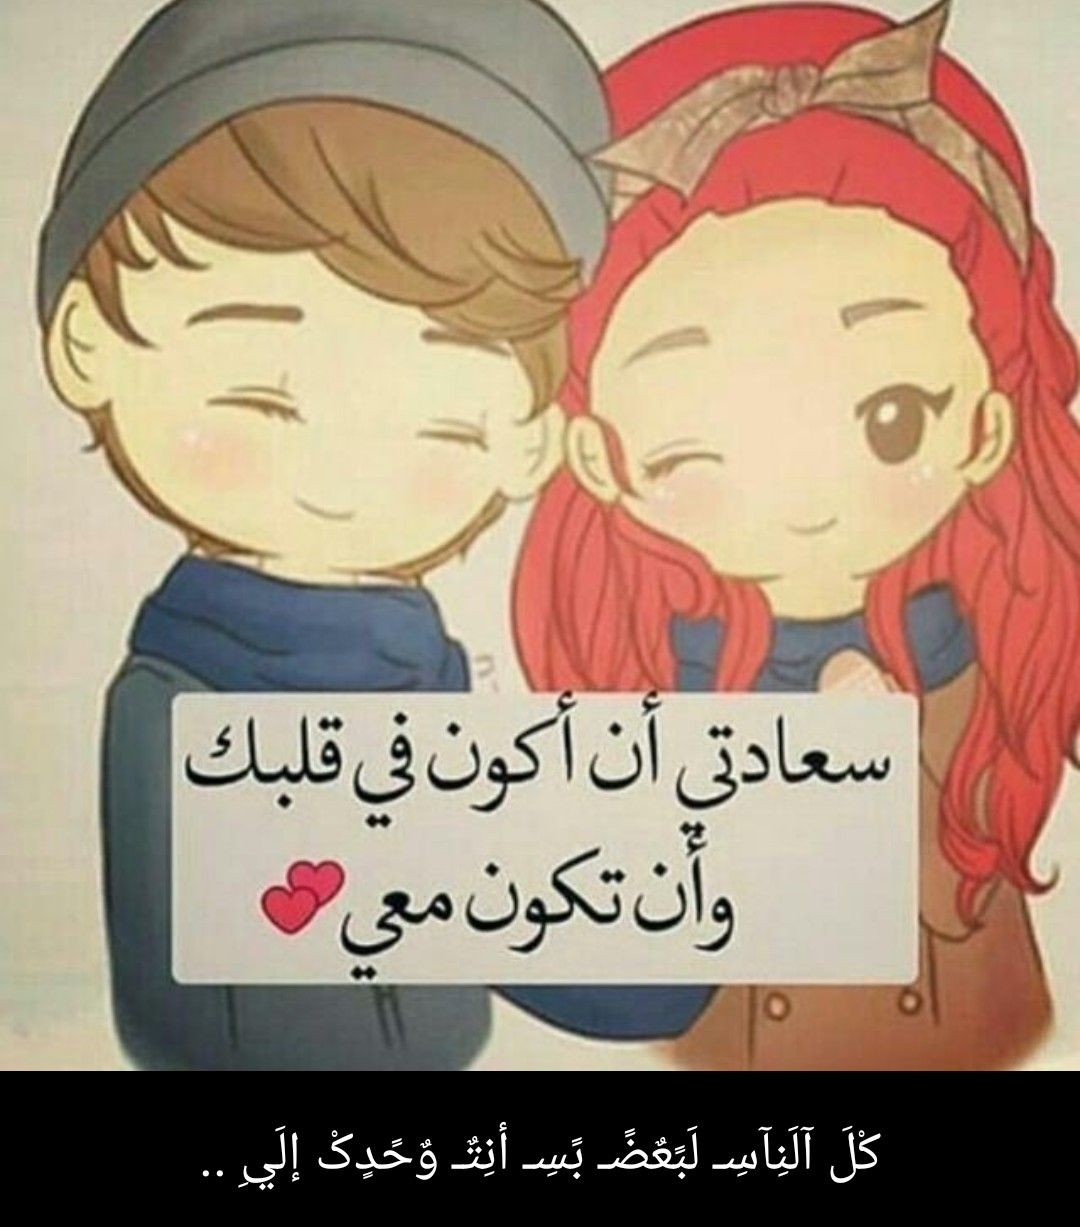 Pin By Moona Alattes On عشقي Love Cartoon Couple Love Words Love Quotes